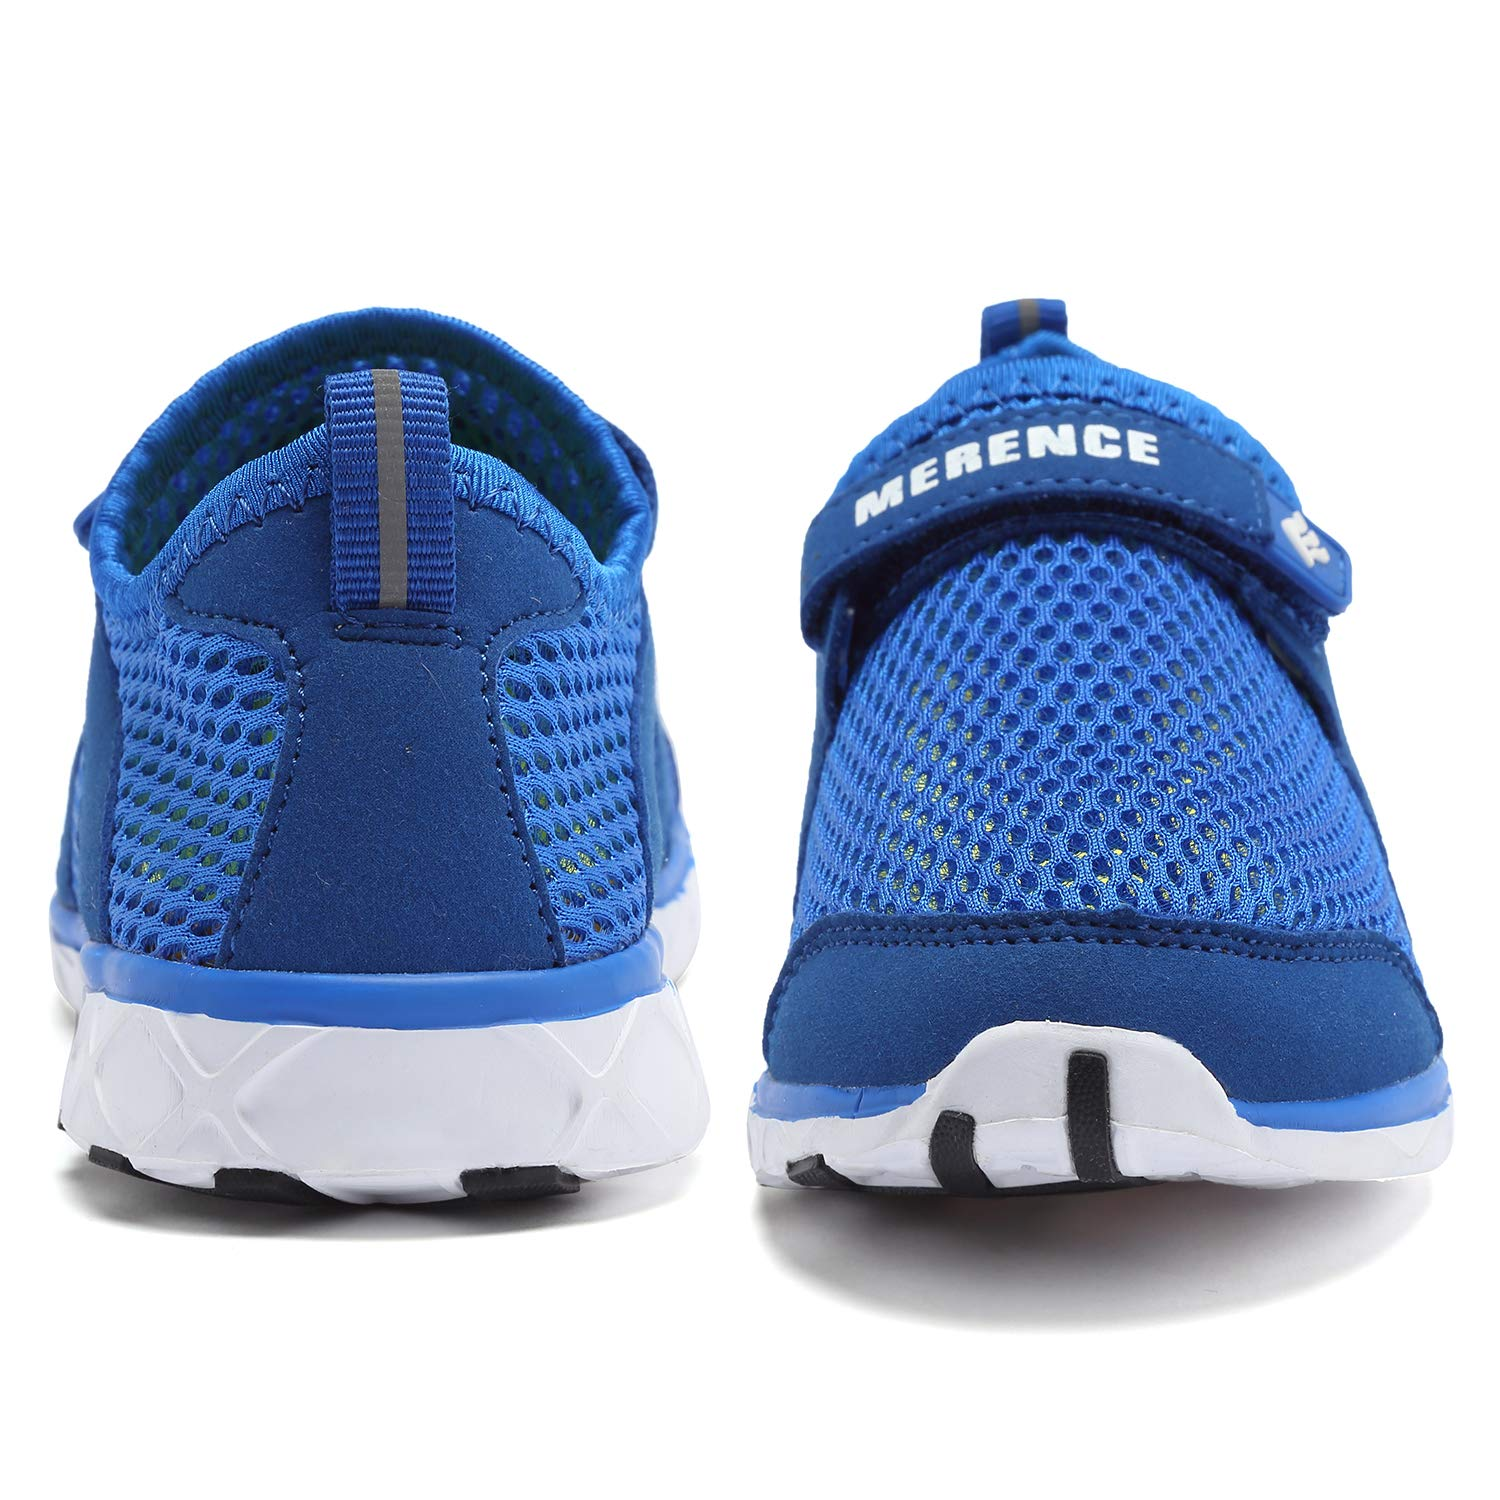 Toddler//Little Kid//Big Kid CIOR Boys /& Girls Water Shoes Aqua Shoes Swim Shoes Athletic Sneakers Lightweight Sport Shoes